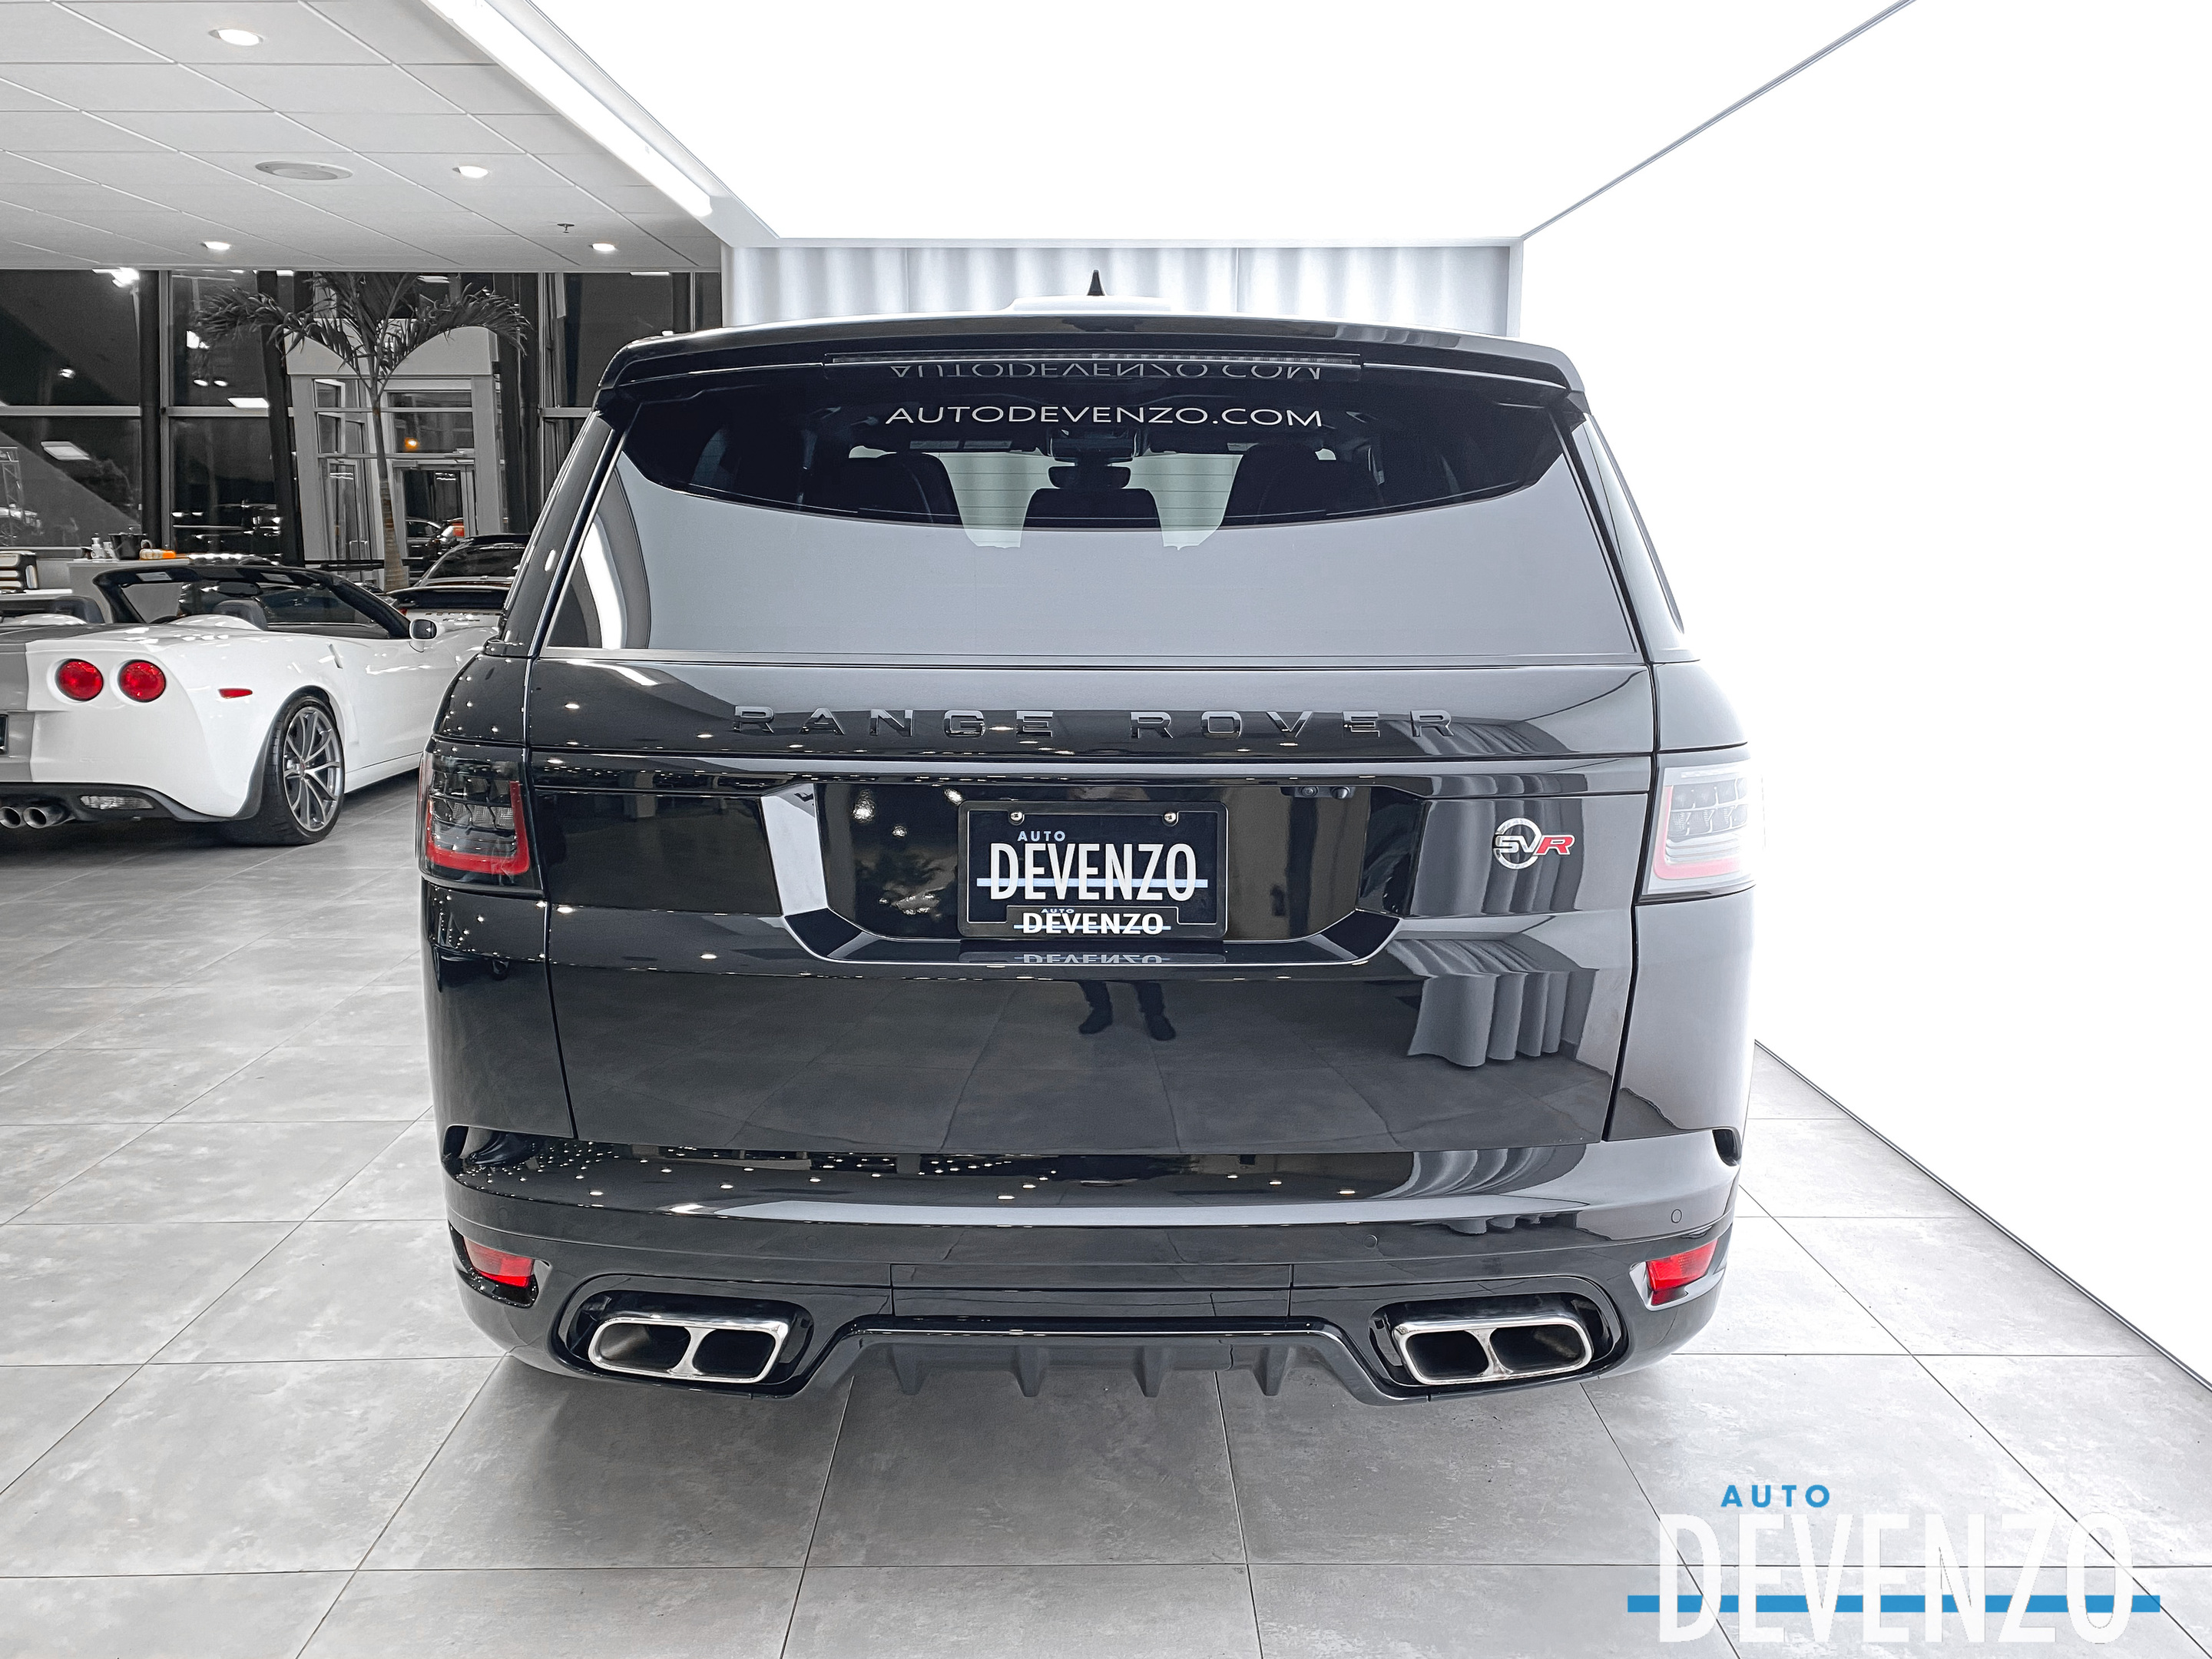 2019 Land Rover Range Rover Sport V8 Supercharged SVR 575hp Adaptive Cruise complet